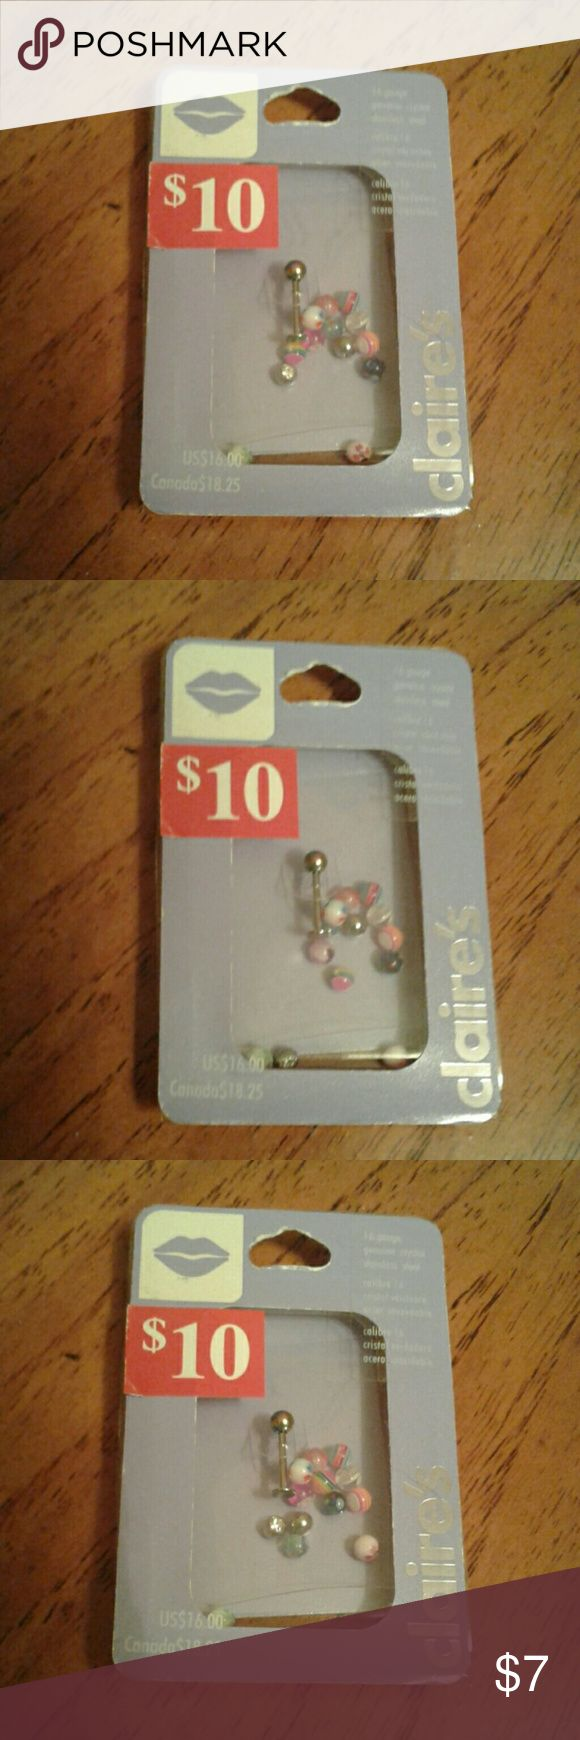 NIB Assorted Labret Rings 16g Unopened, 15 different balls, rhinestone, metallic, stripes, flower, silver sparkles, etc. Claire's Jewelry